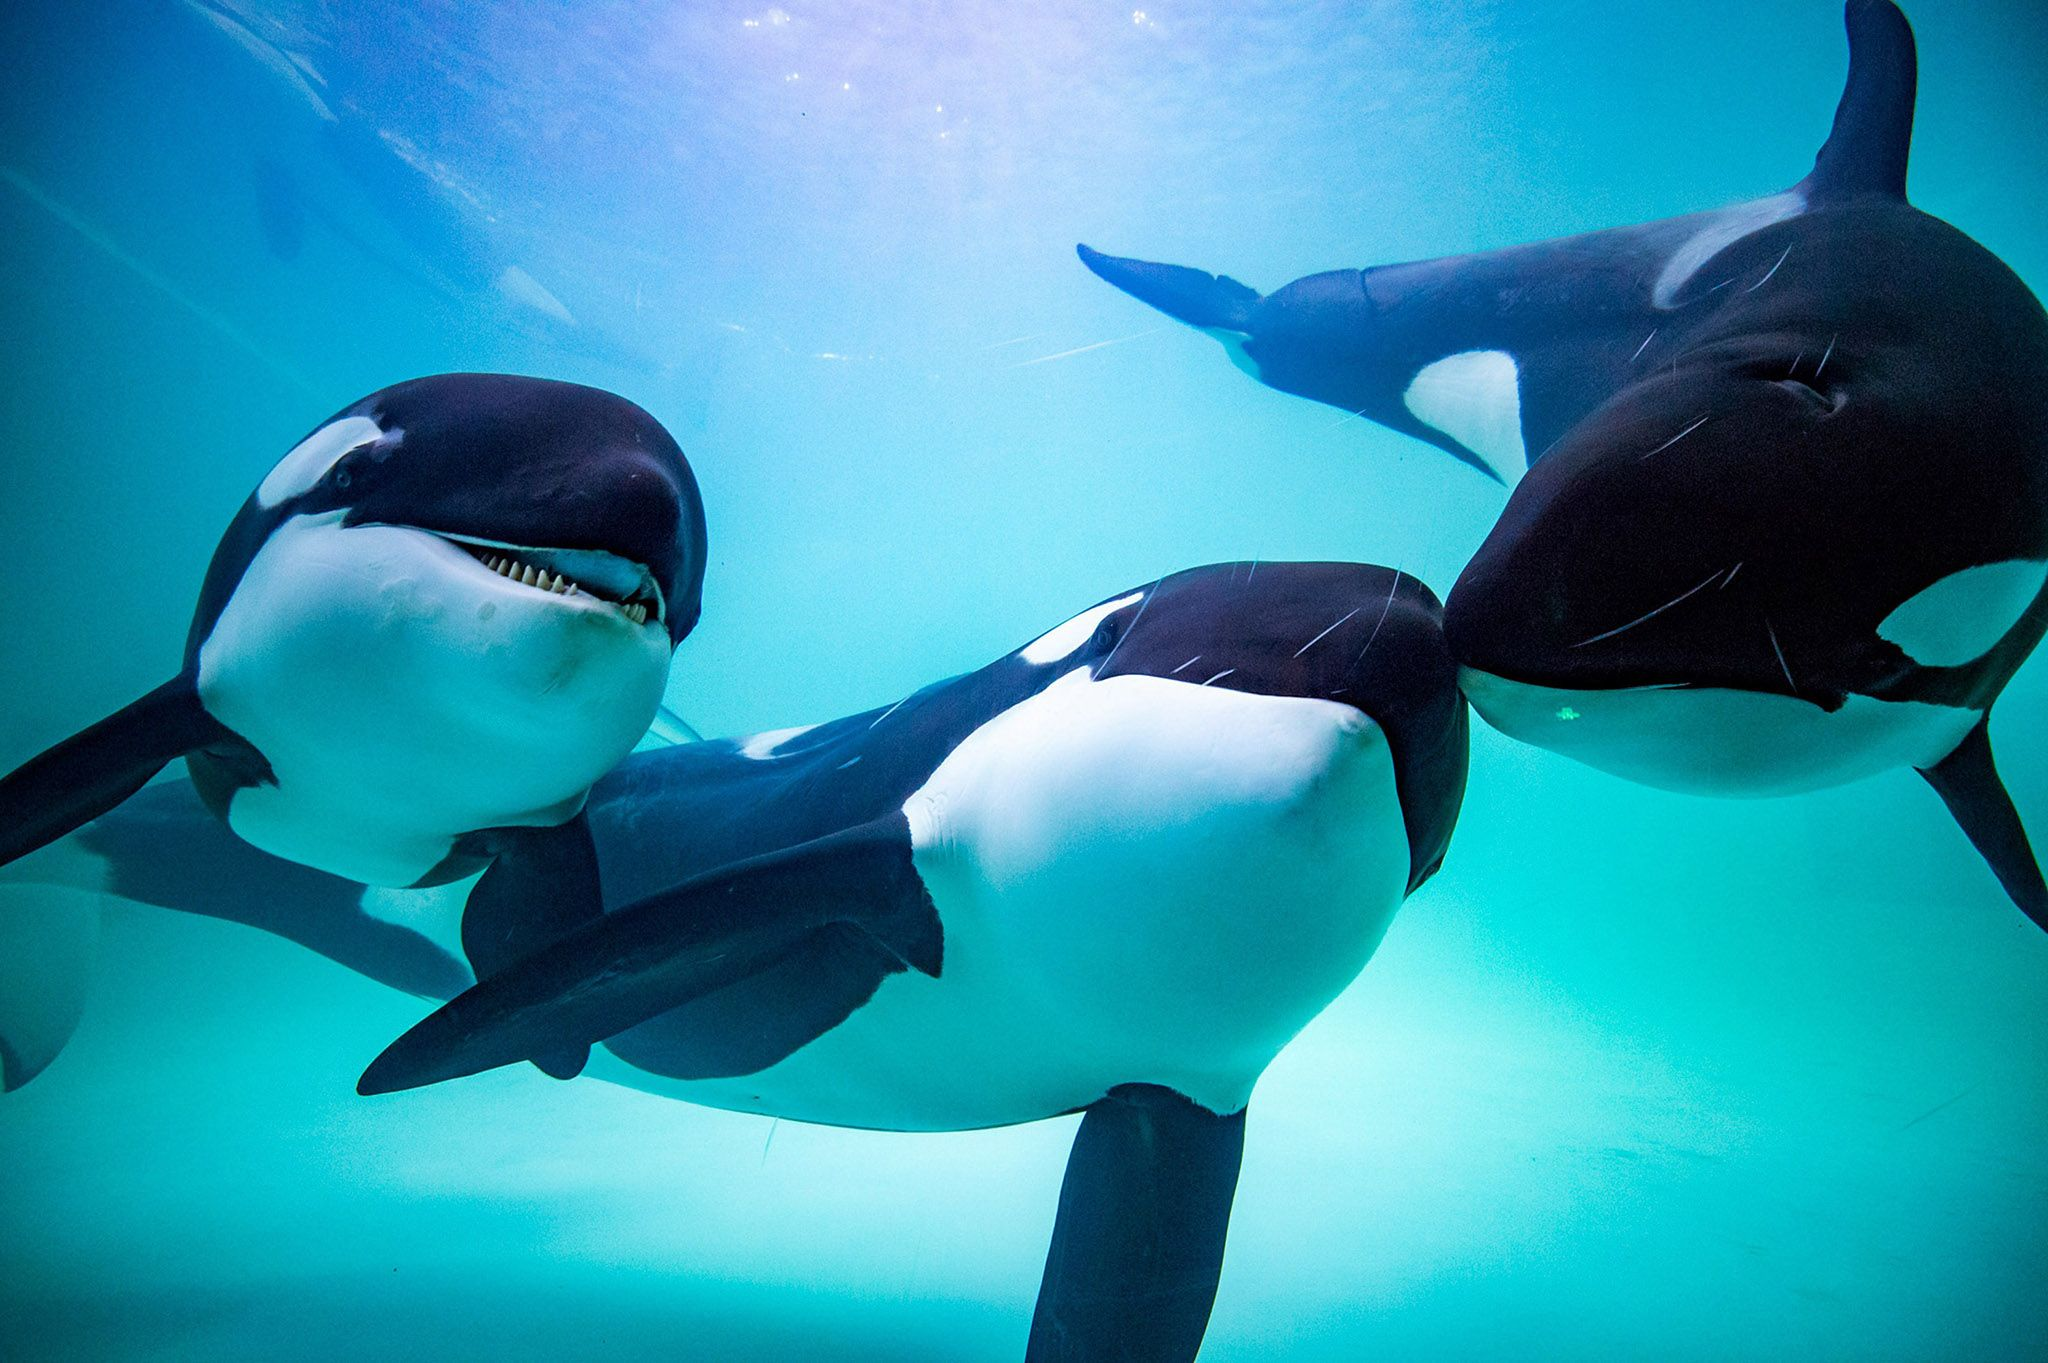 Baby orcas being born wallpaper ocean blue creatures ocean blue creatures pinterest orcas wallpaper and killer whales altavistaventures Images